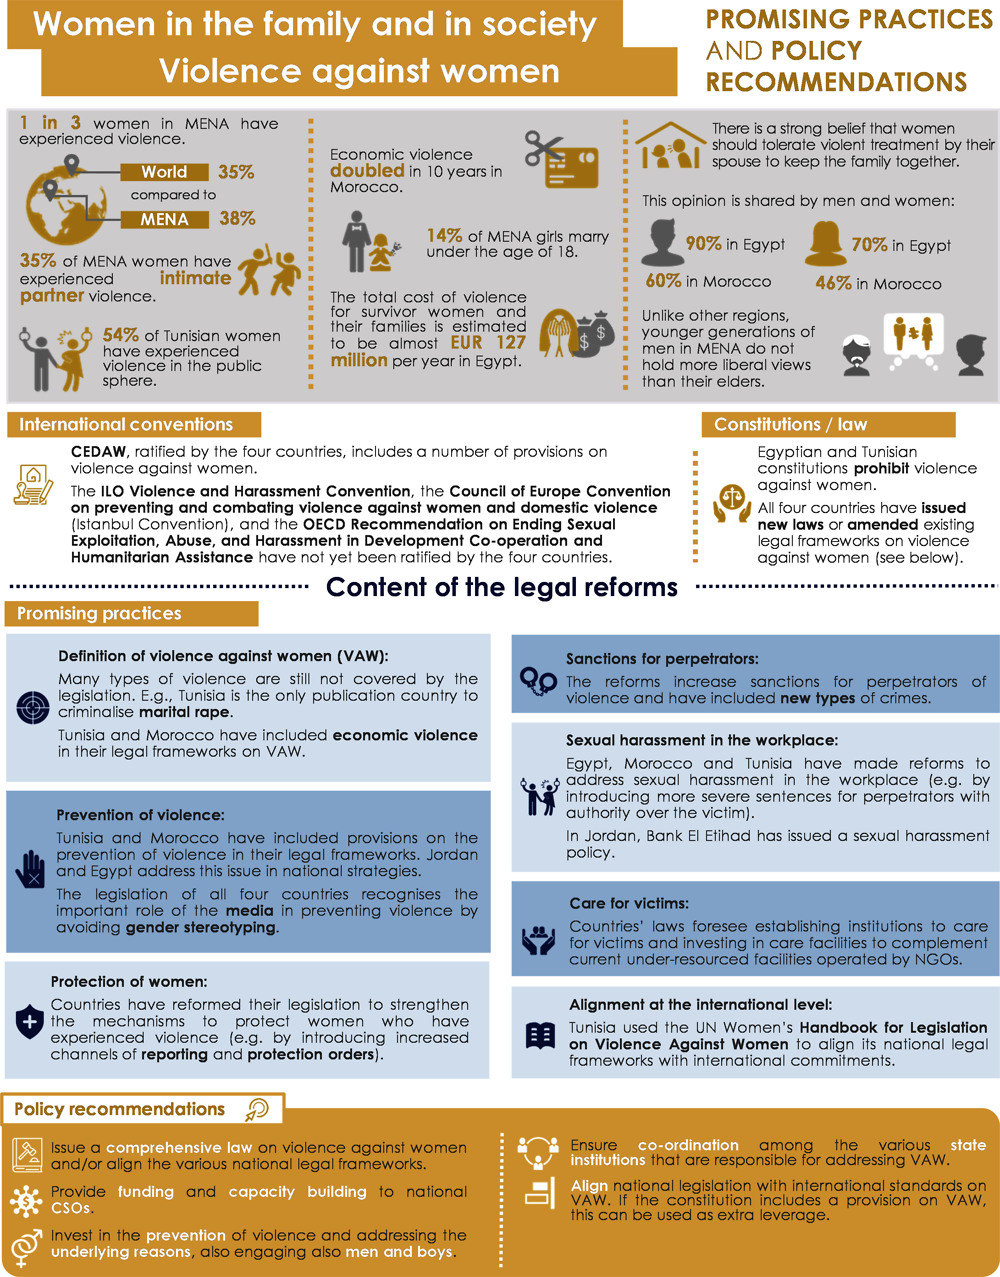 Infographic 4.2. Women in the family and society: violence against women